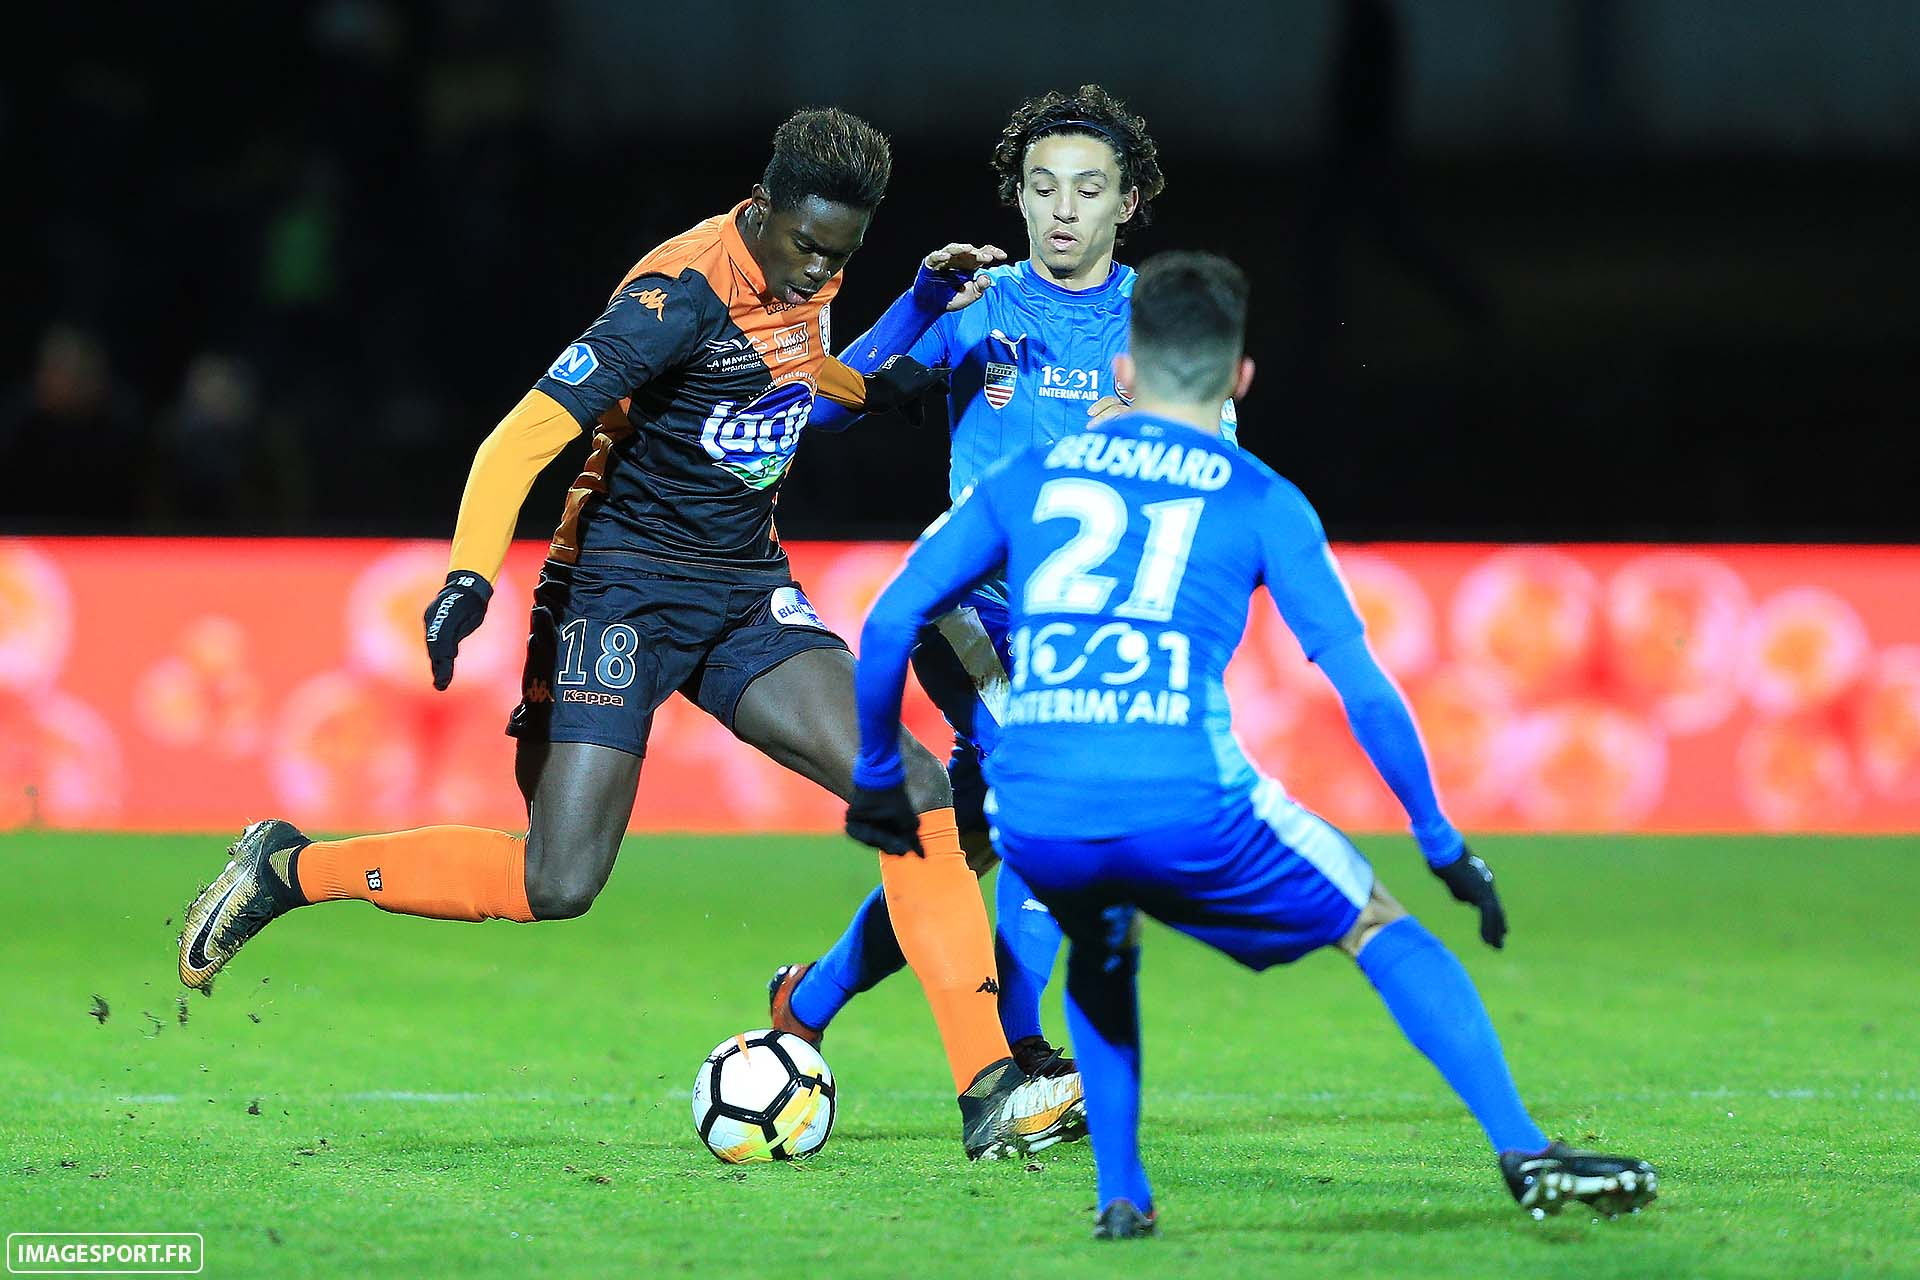 5b-stade-lavallois-imagesport-solet